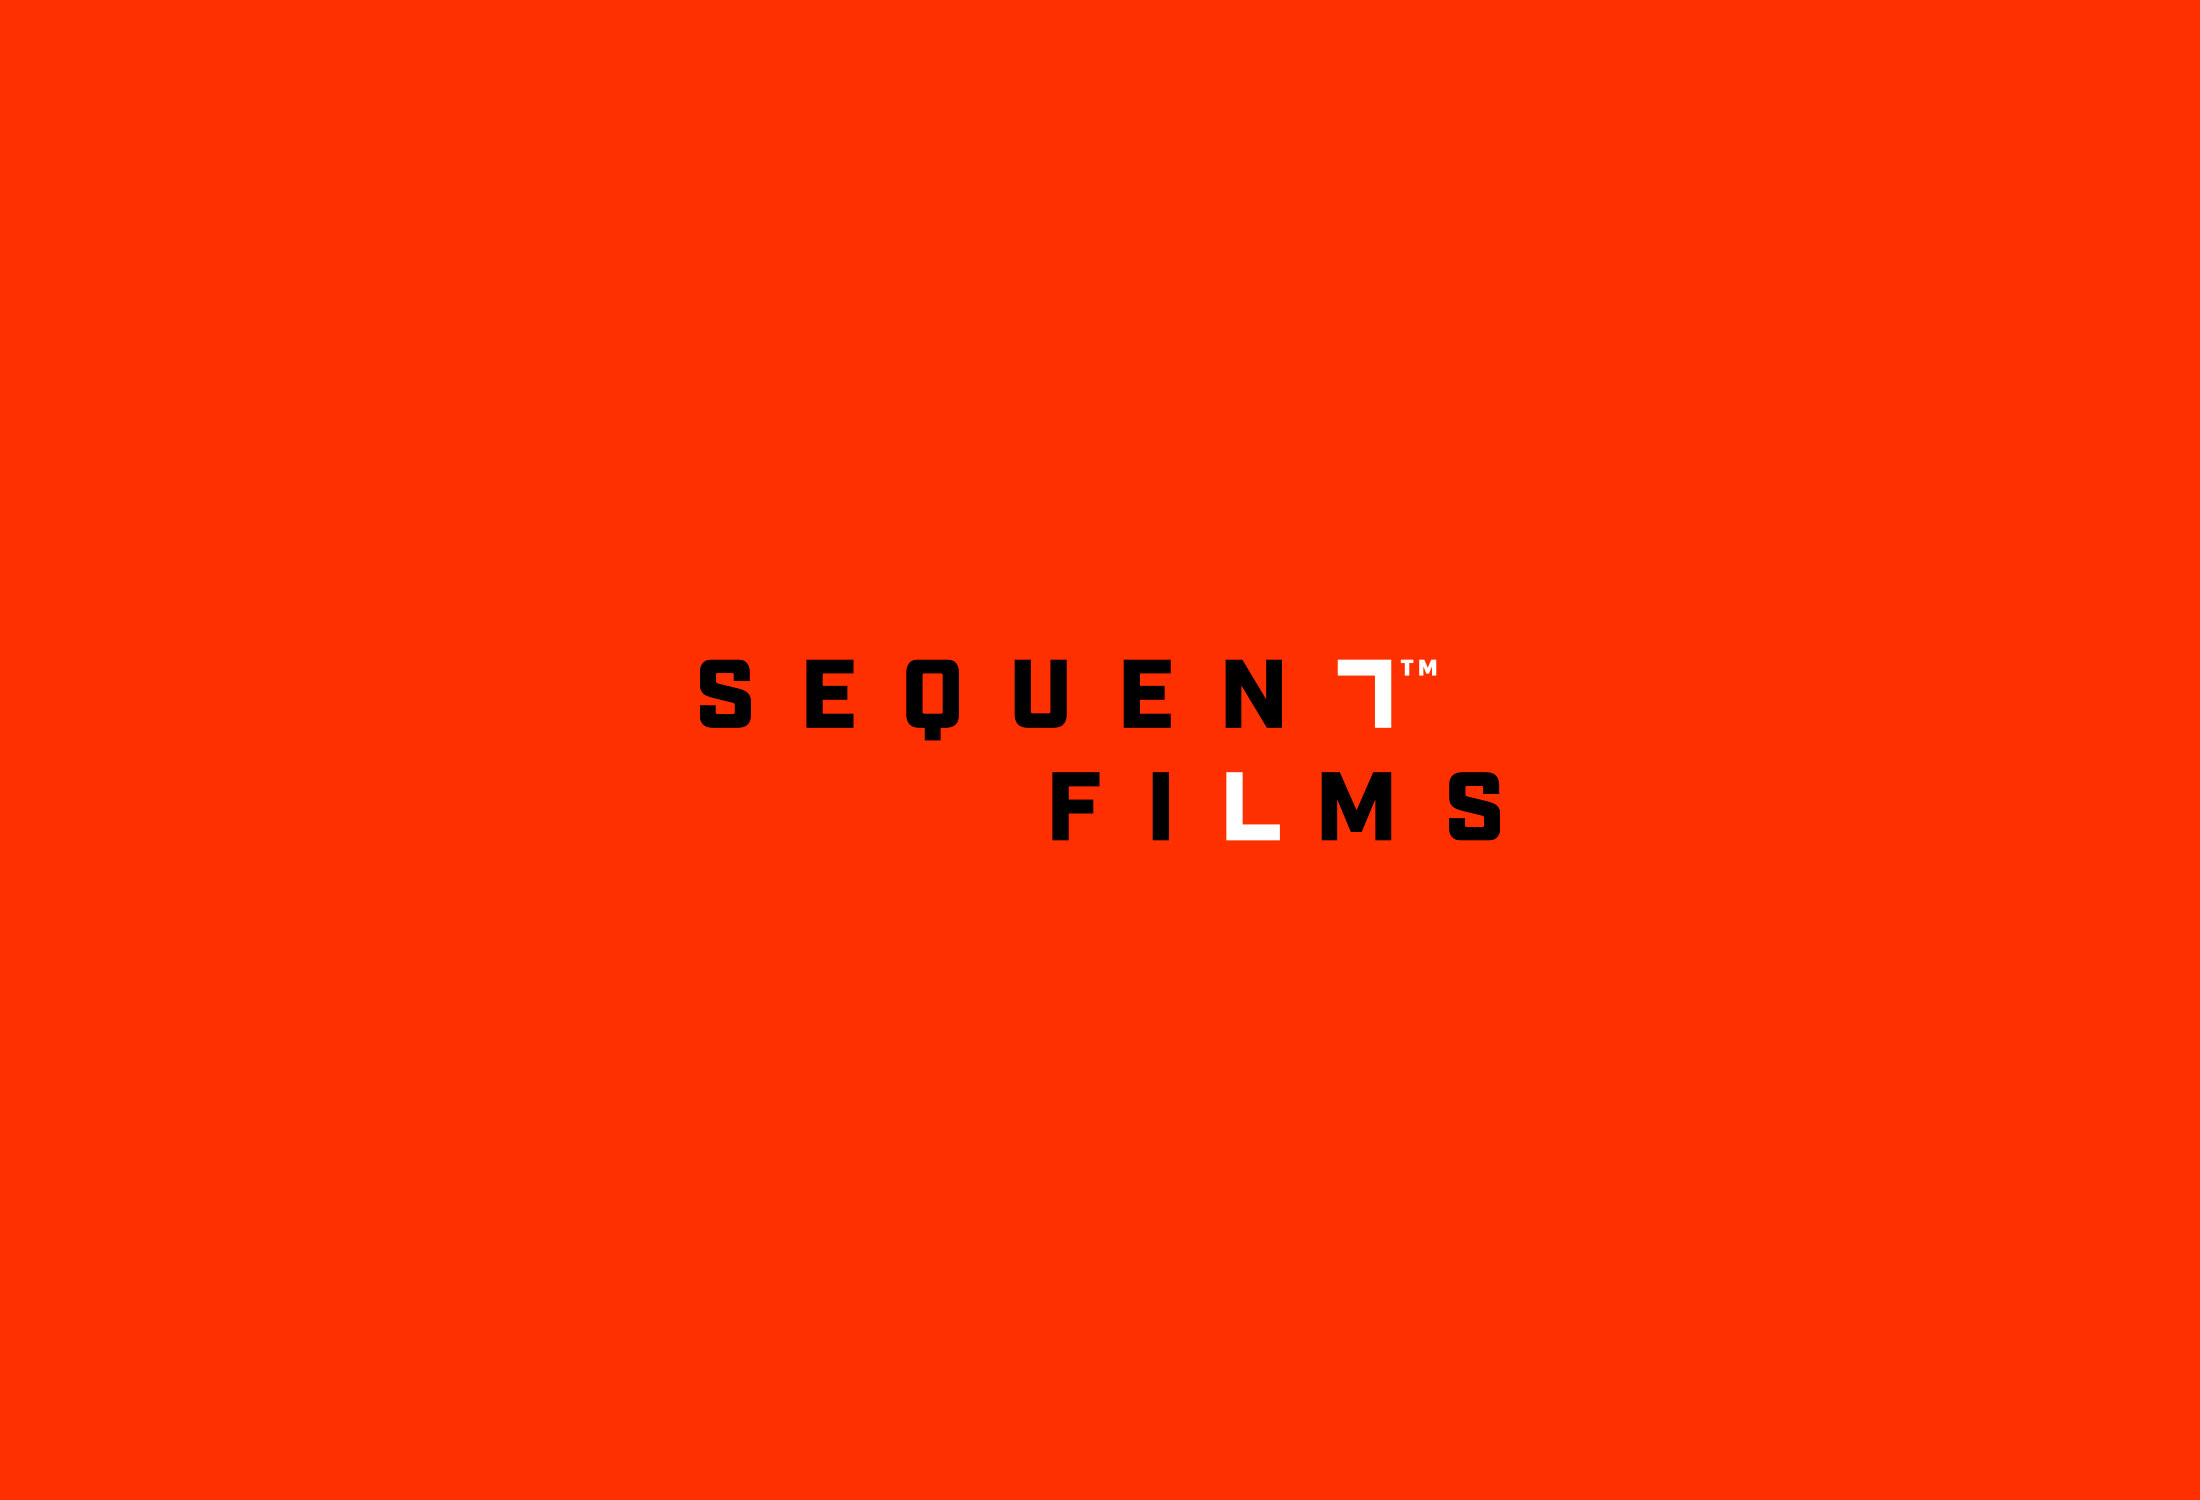 Sequent Films